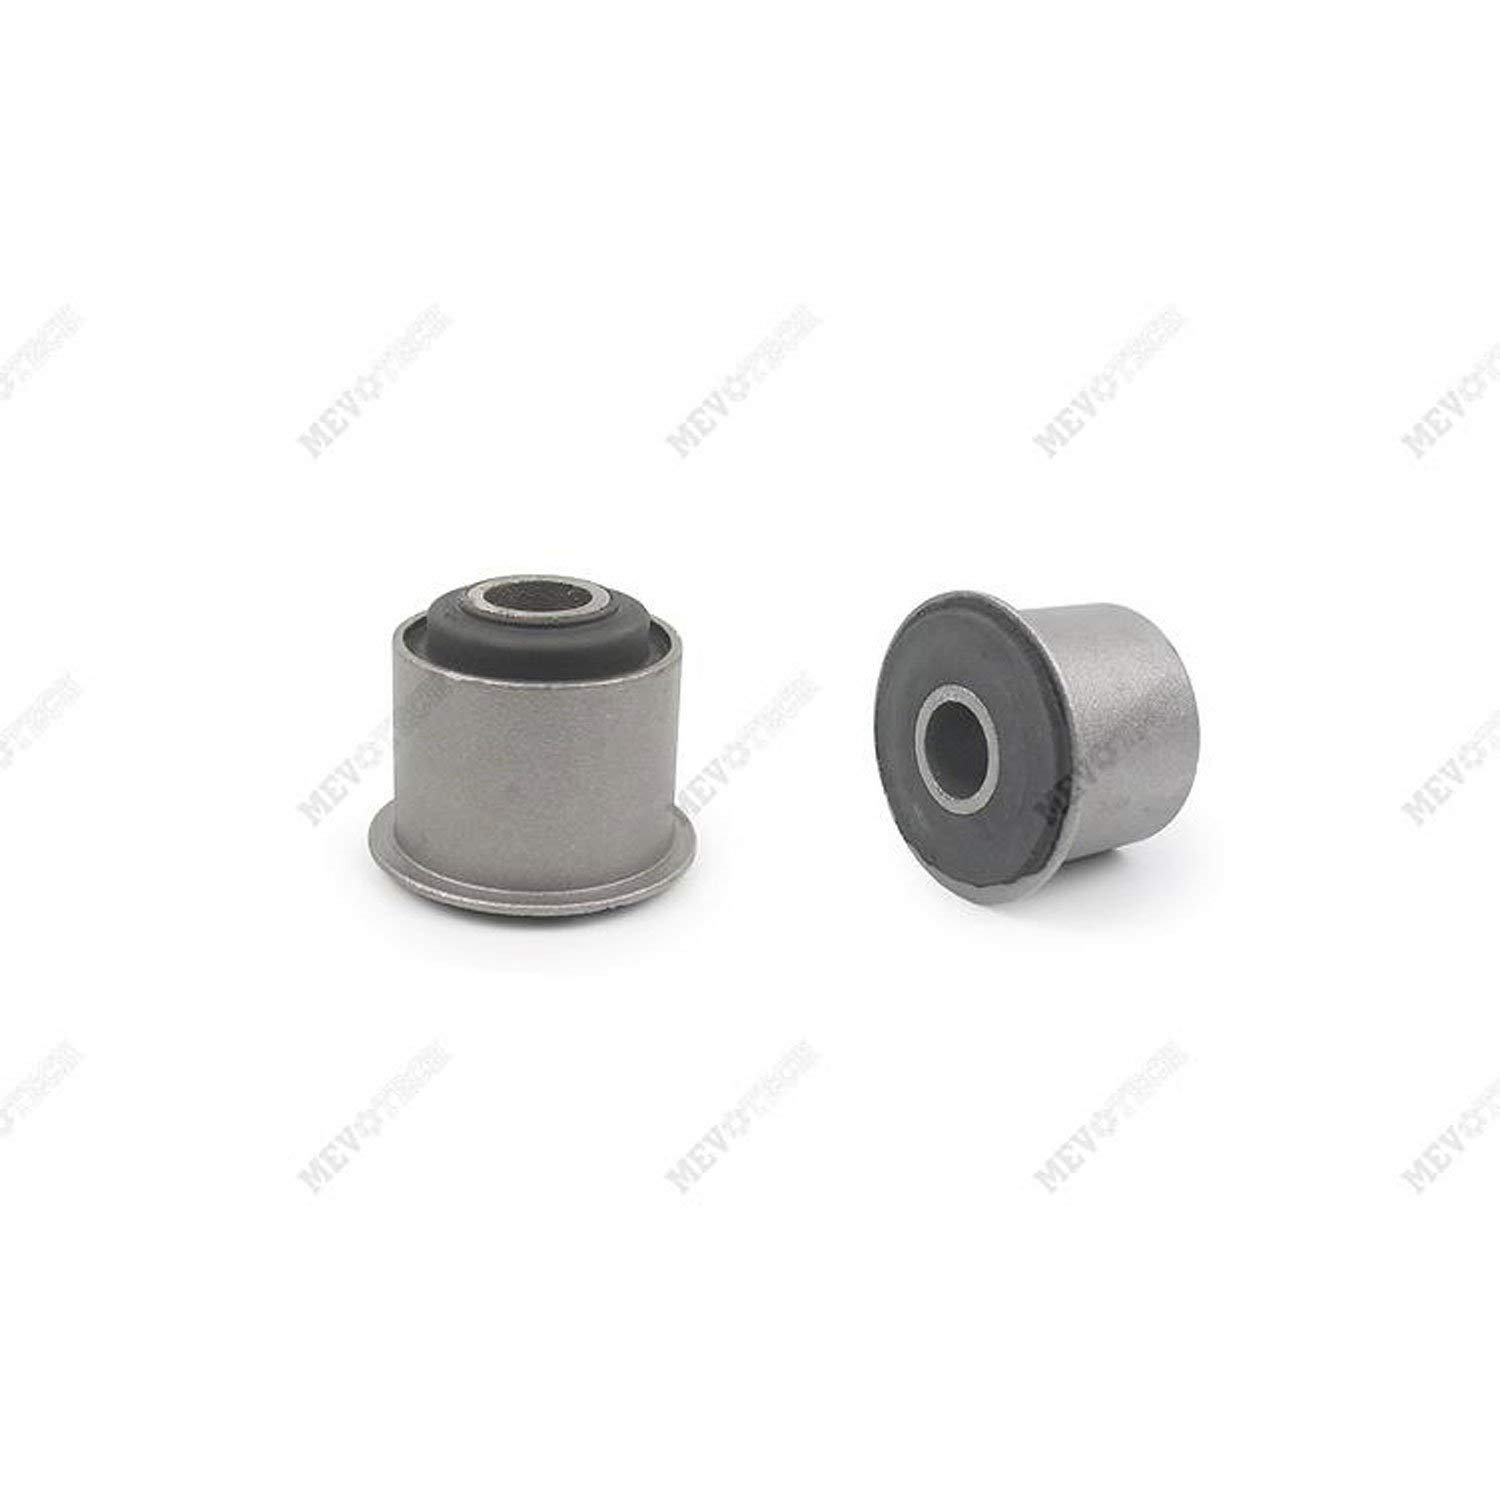 Mevotech MK8621 Suspension I-Beam Axle Pivot Bushing